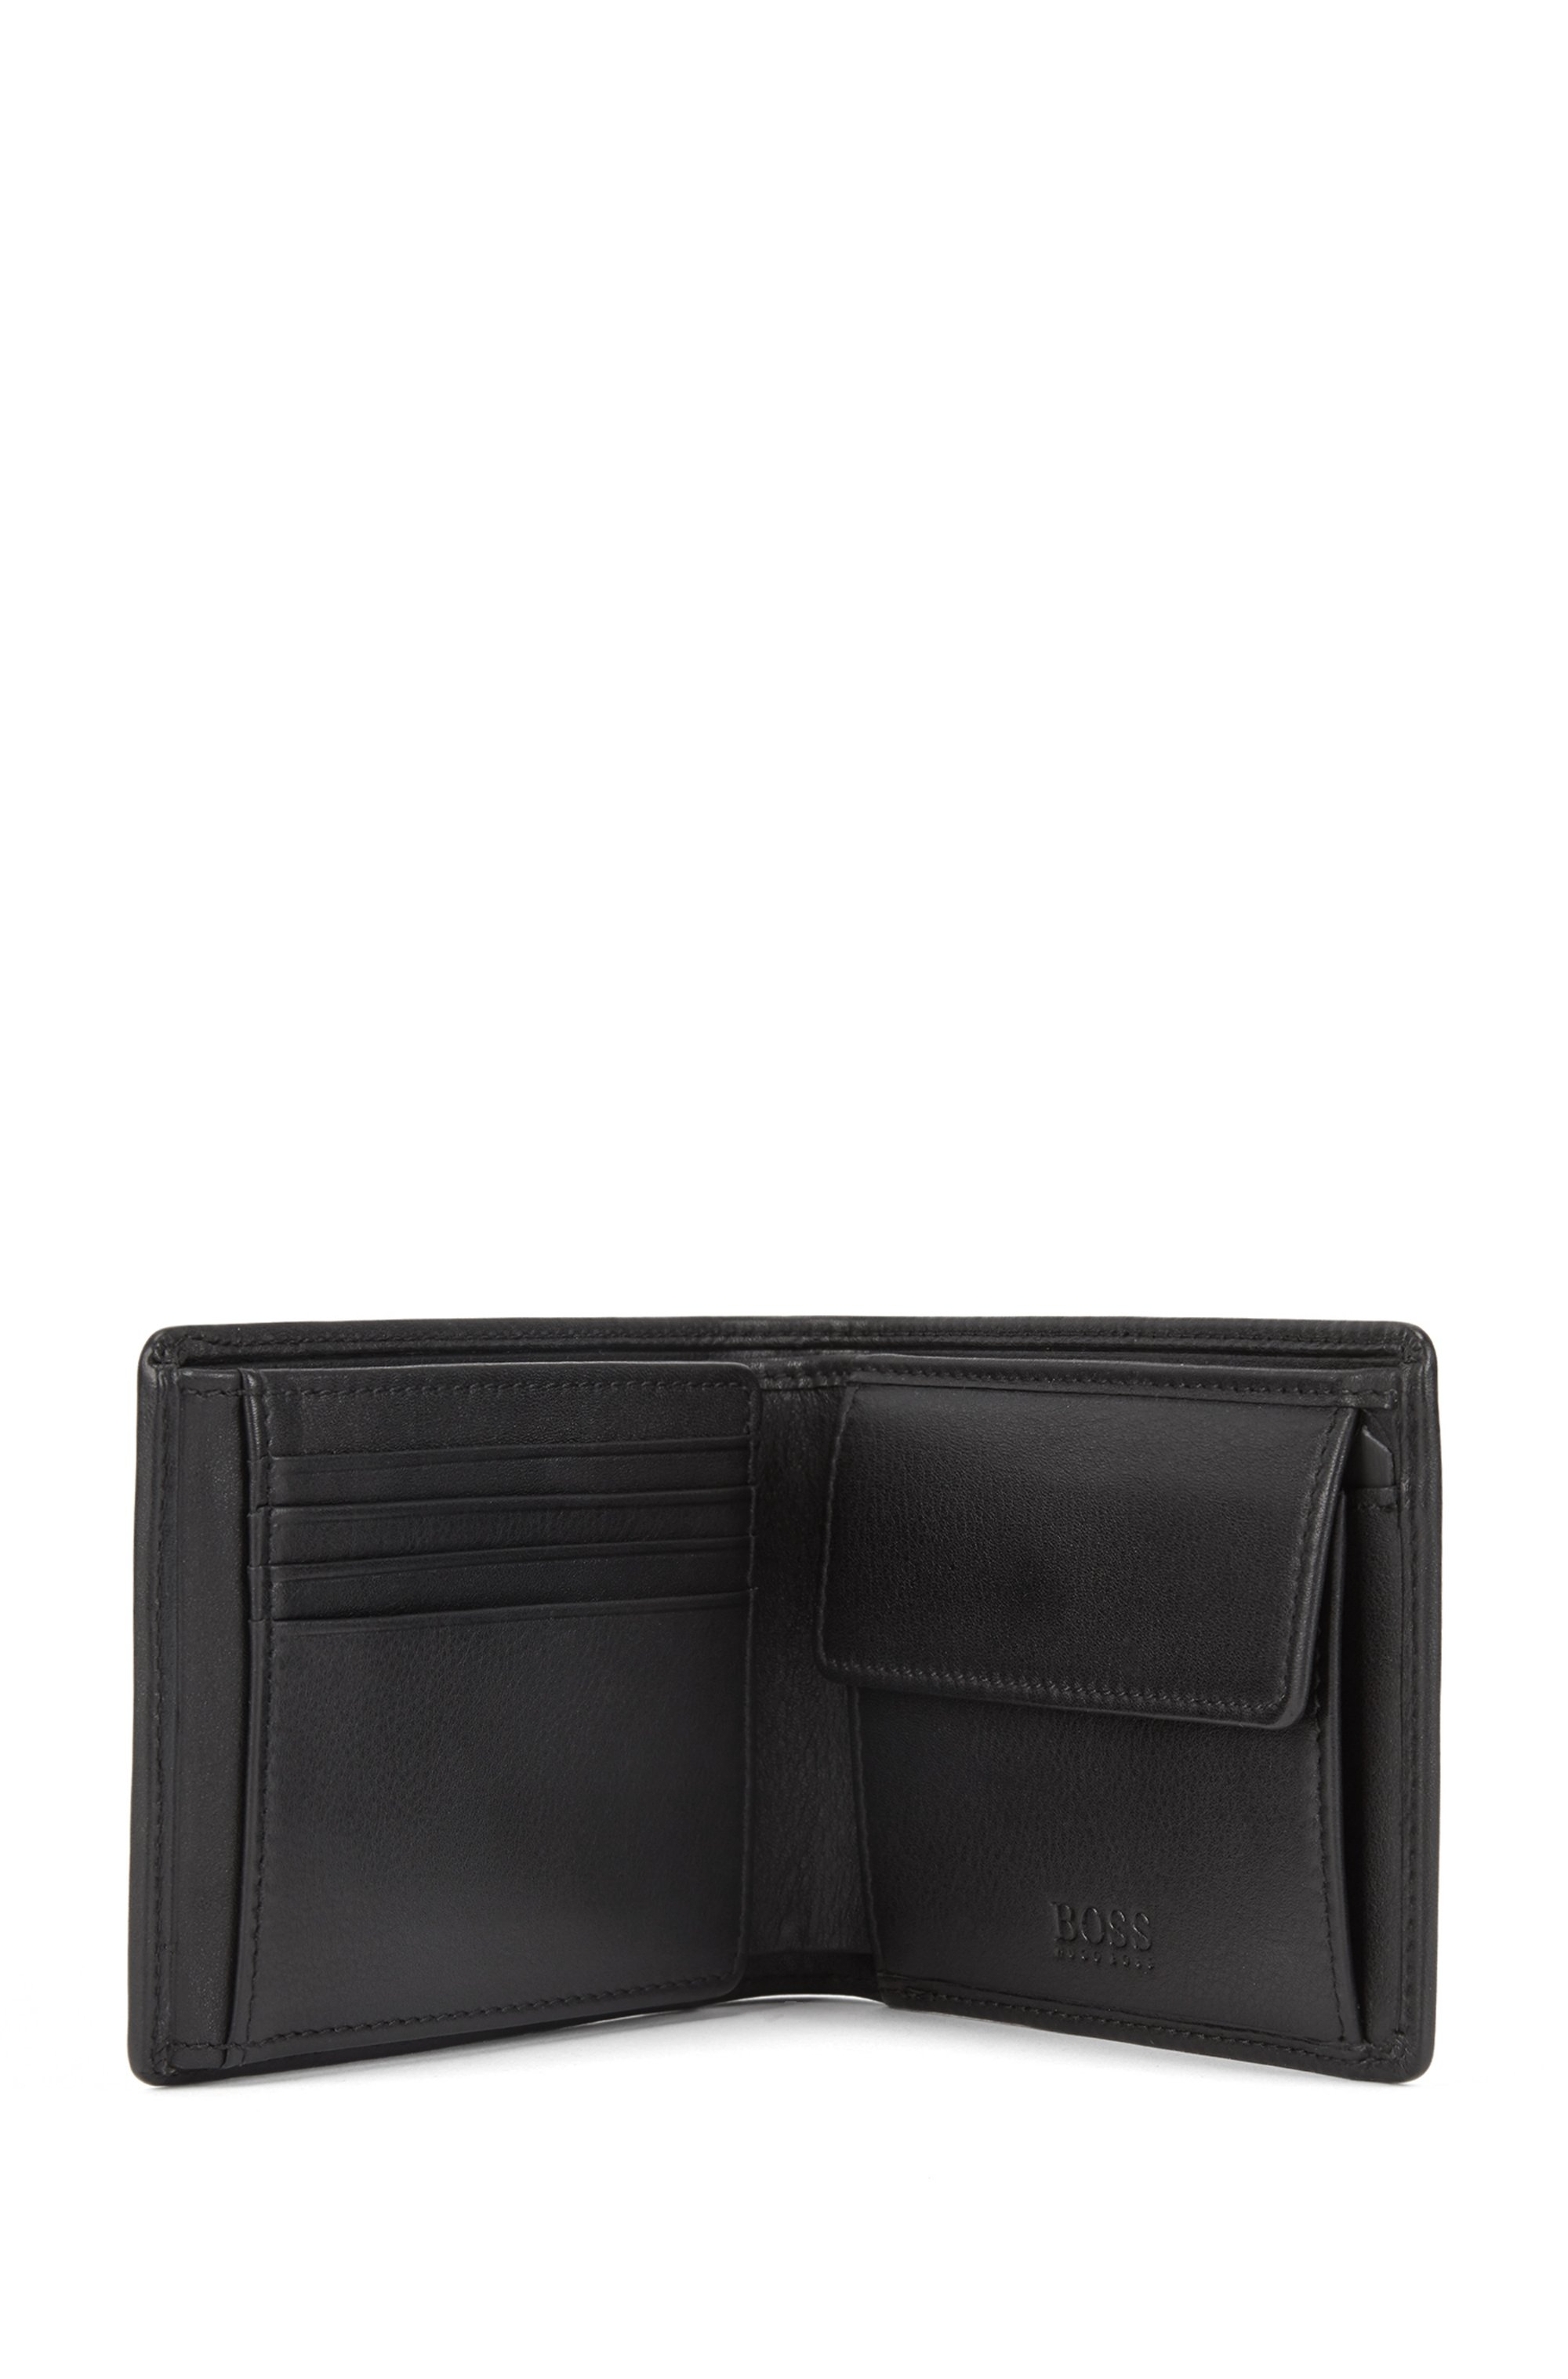 Smooth leather billfold wallet with coin pocket